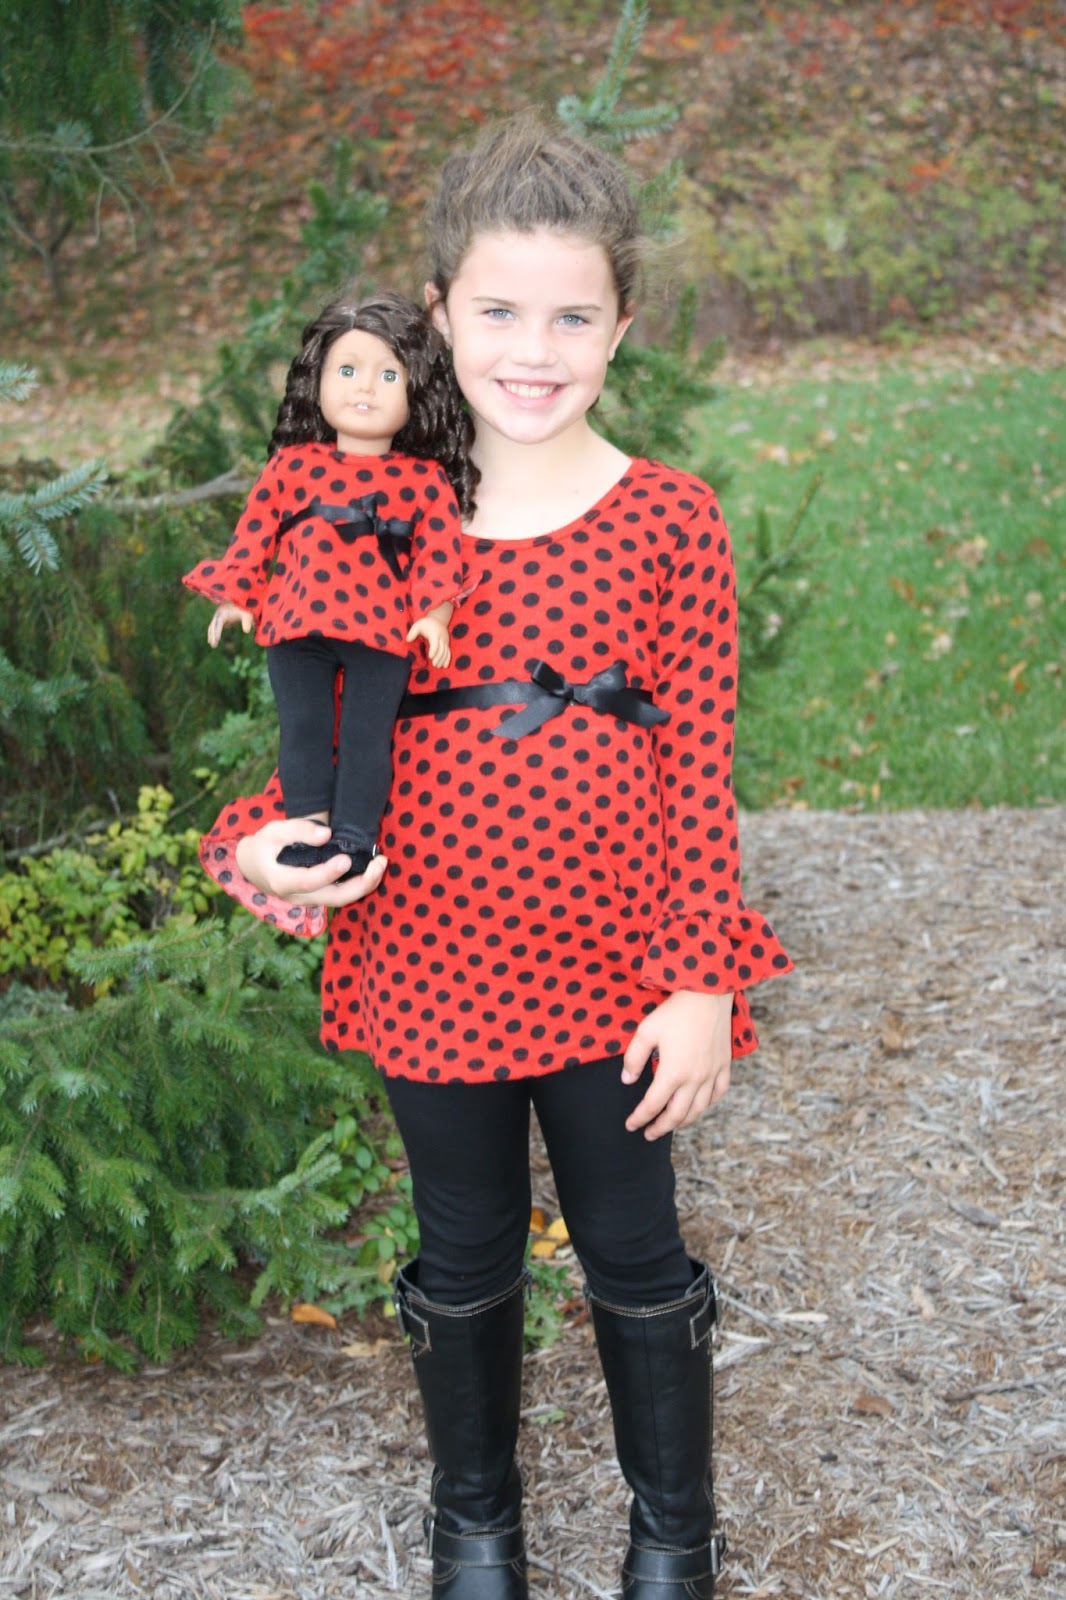 Showing the most relevant results. See all results for matching clothes for child and american girl doll.